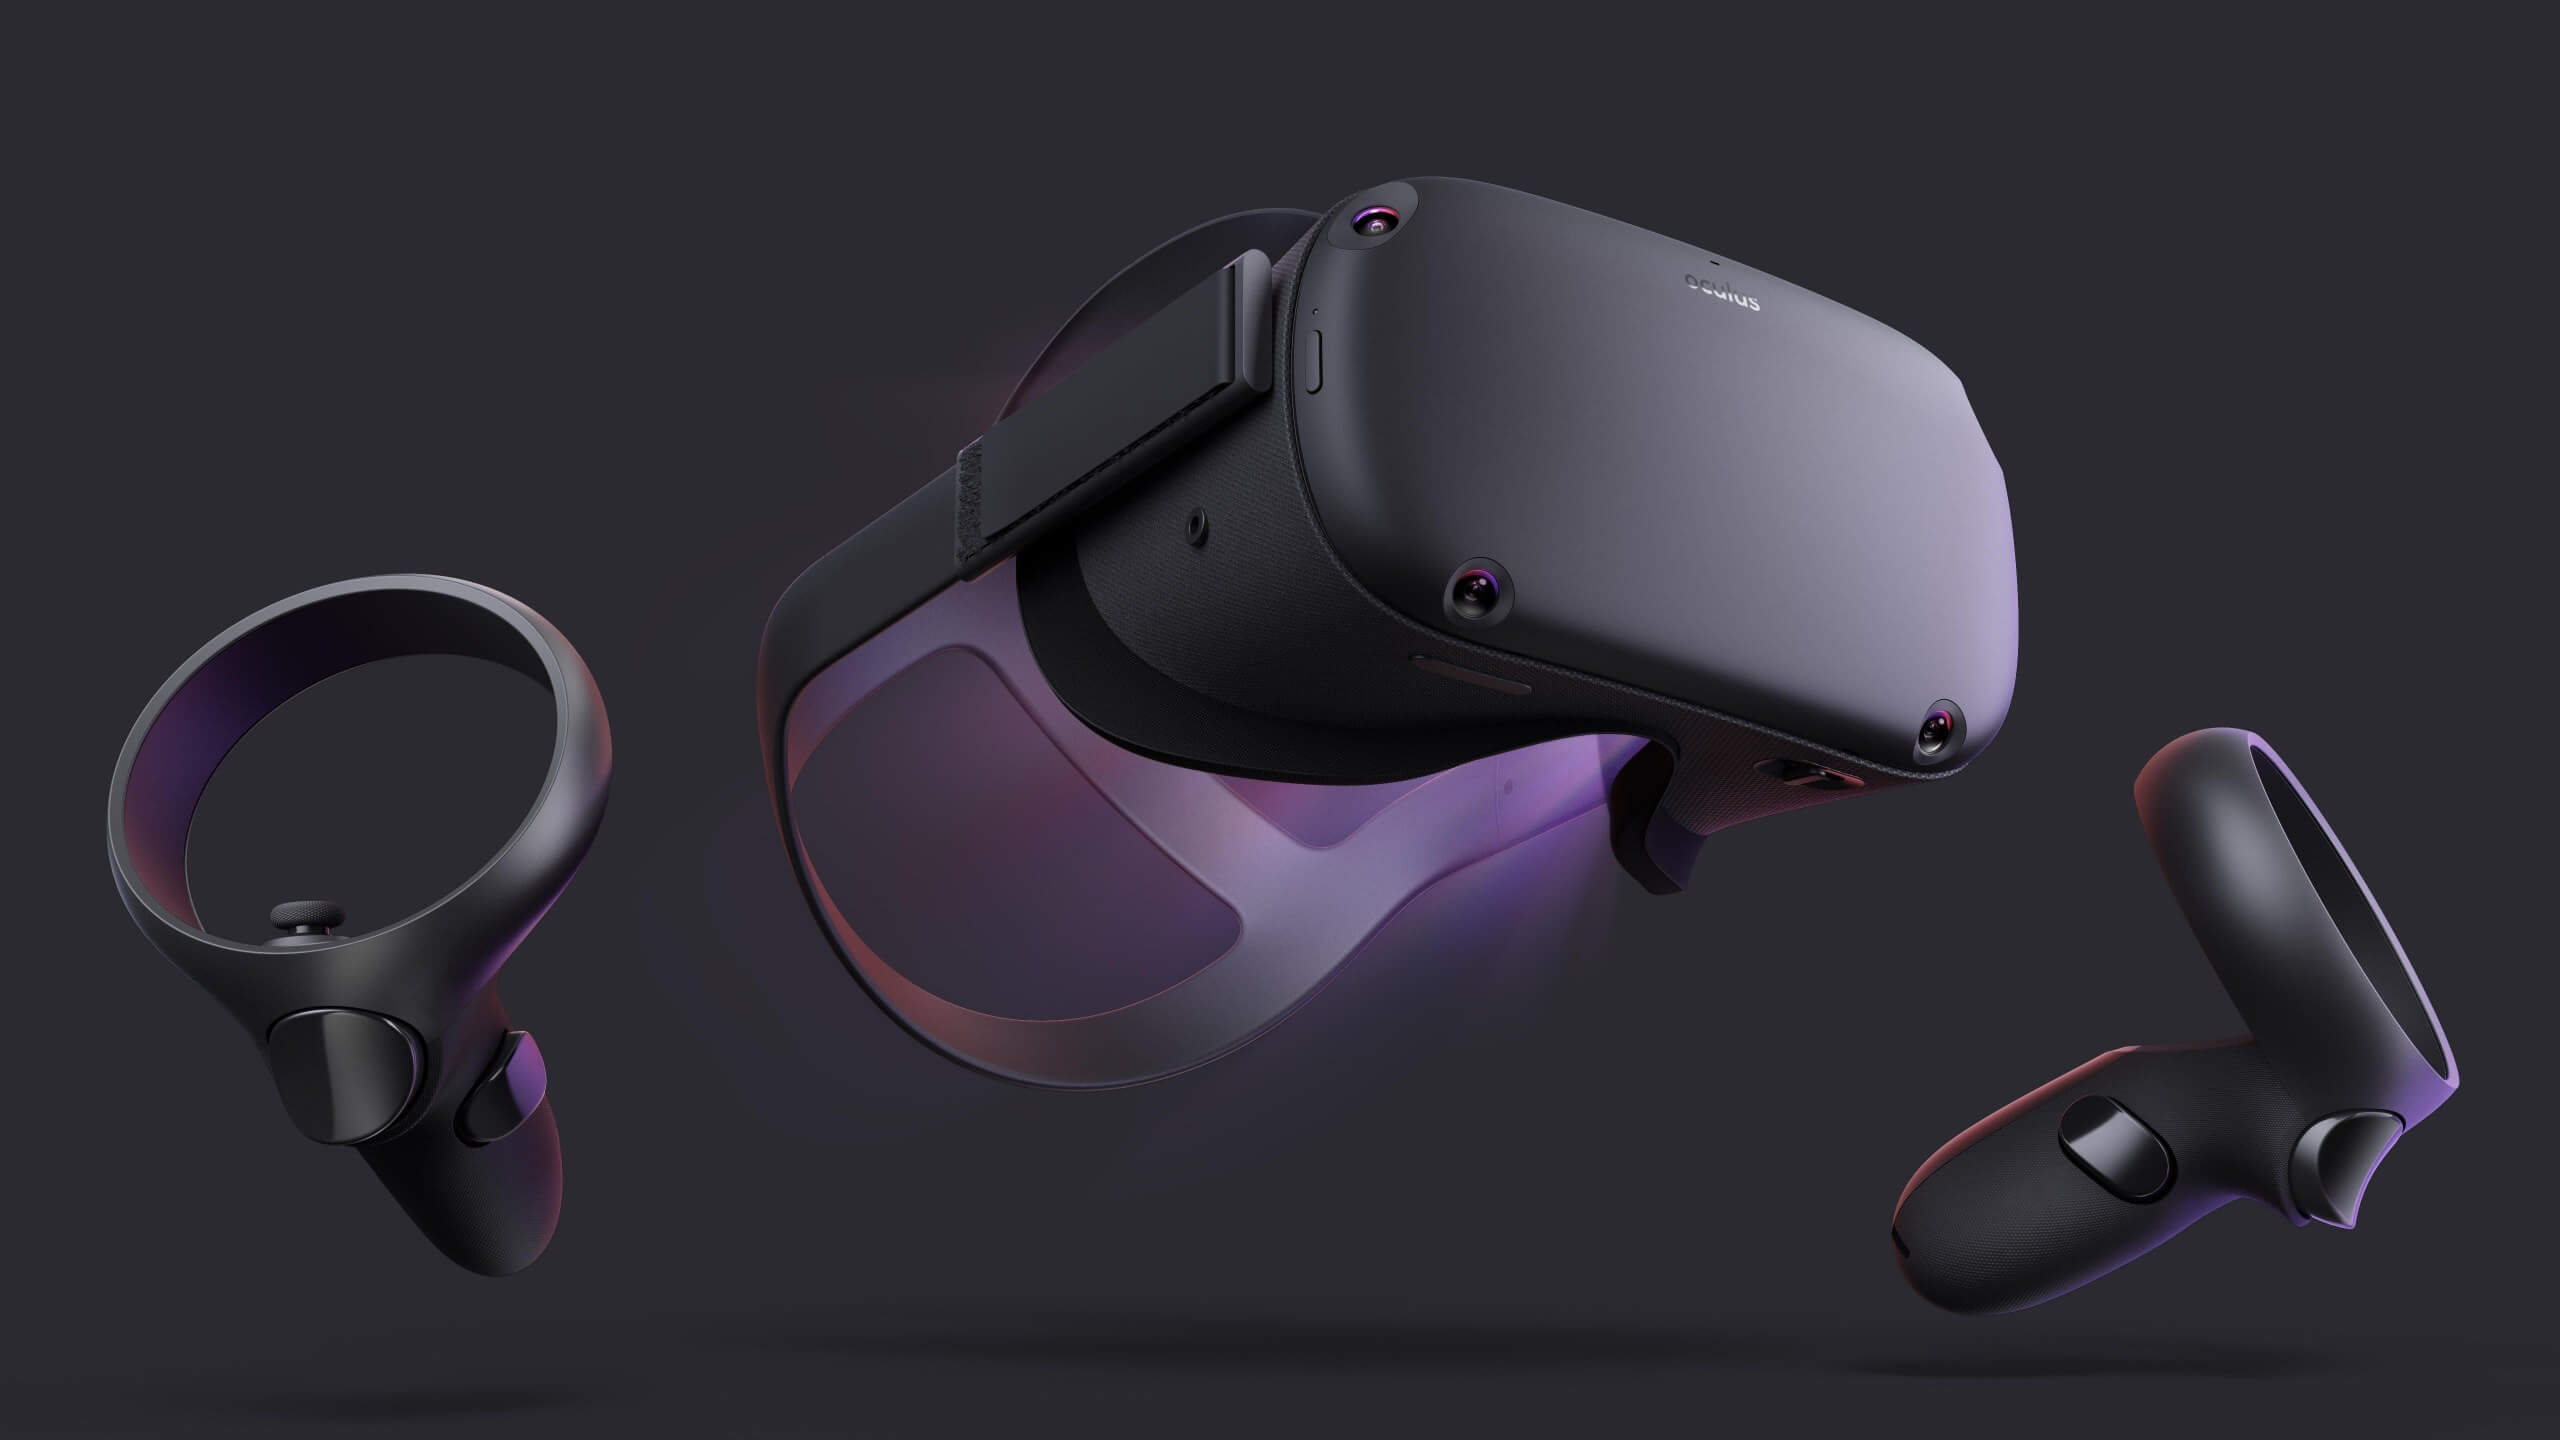 Oculus expands VR for enterprise with new bundles and subscription service